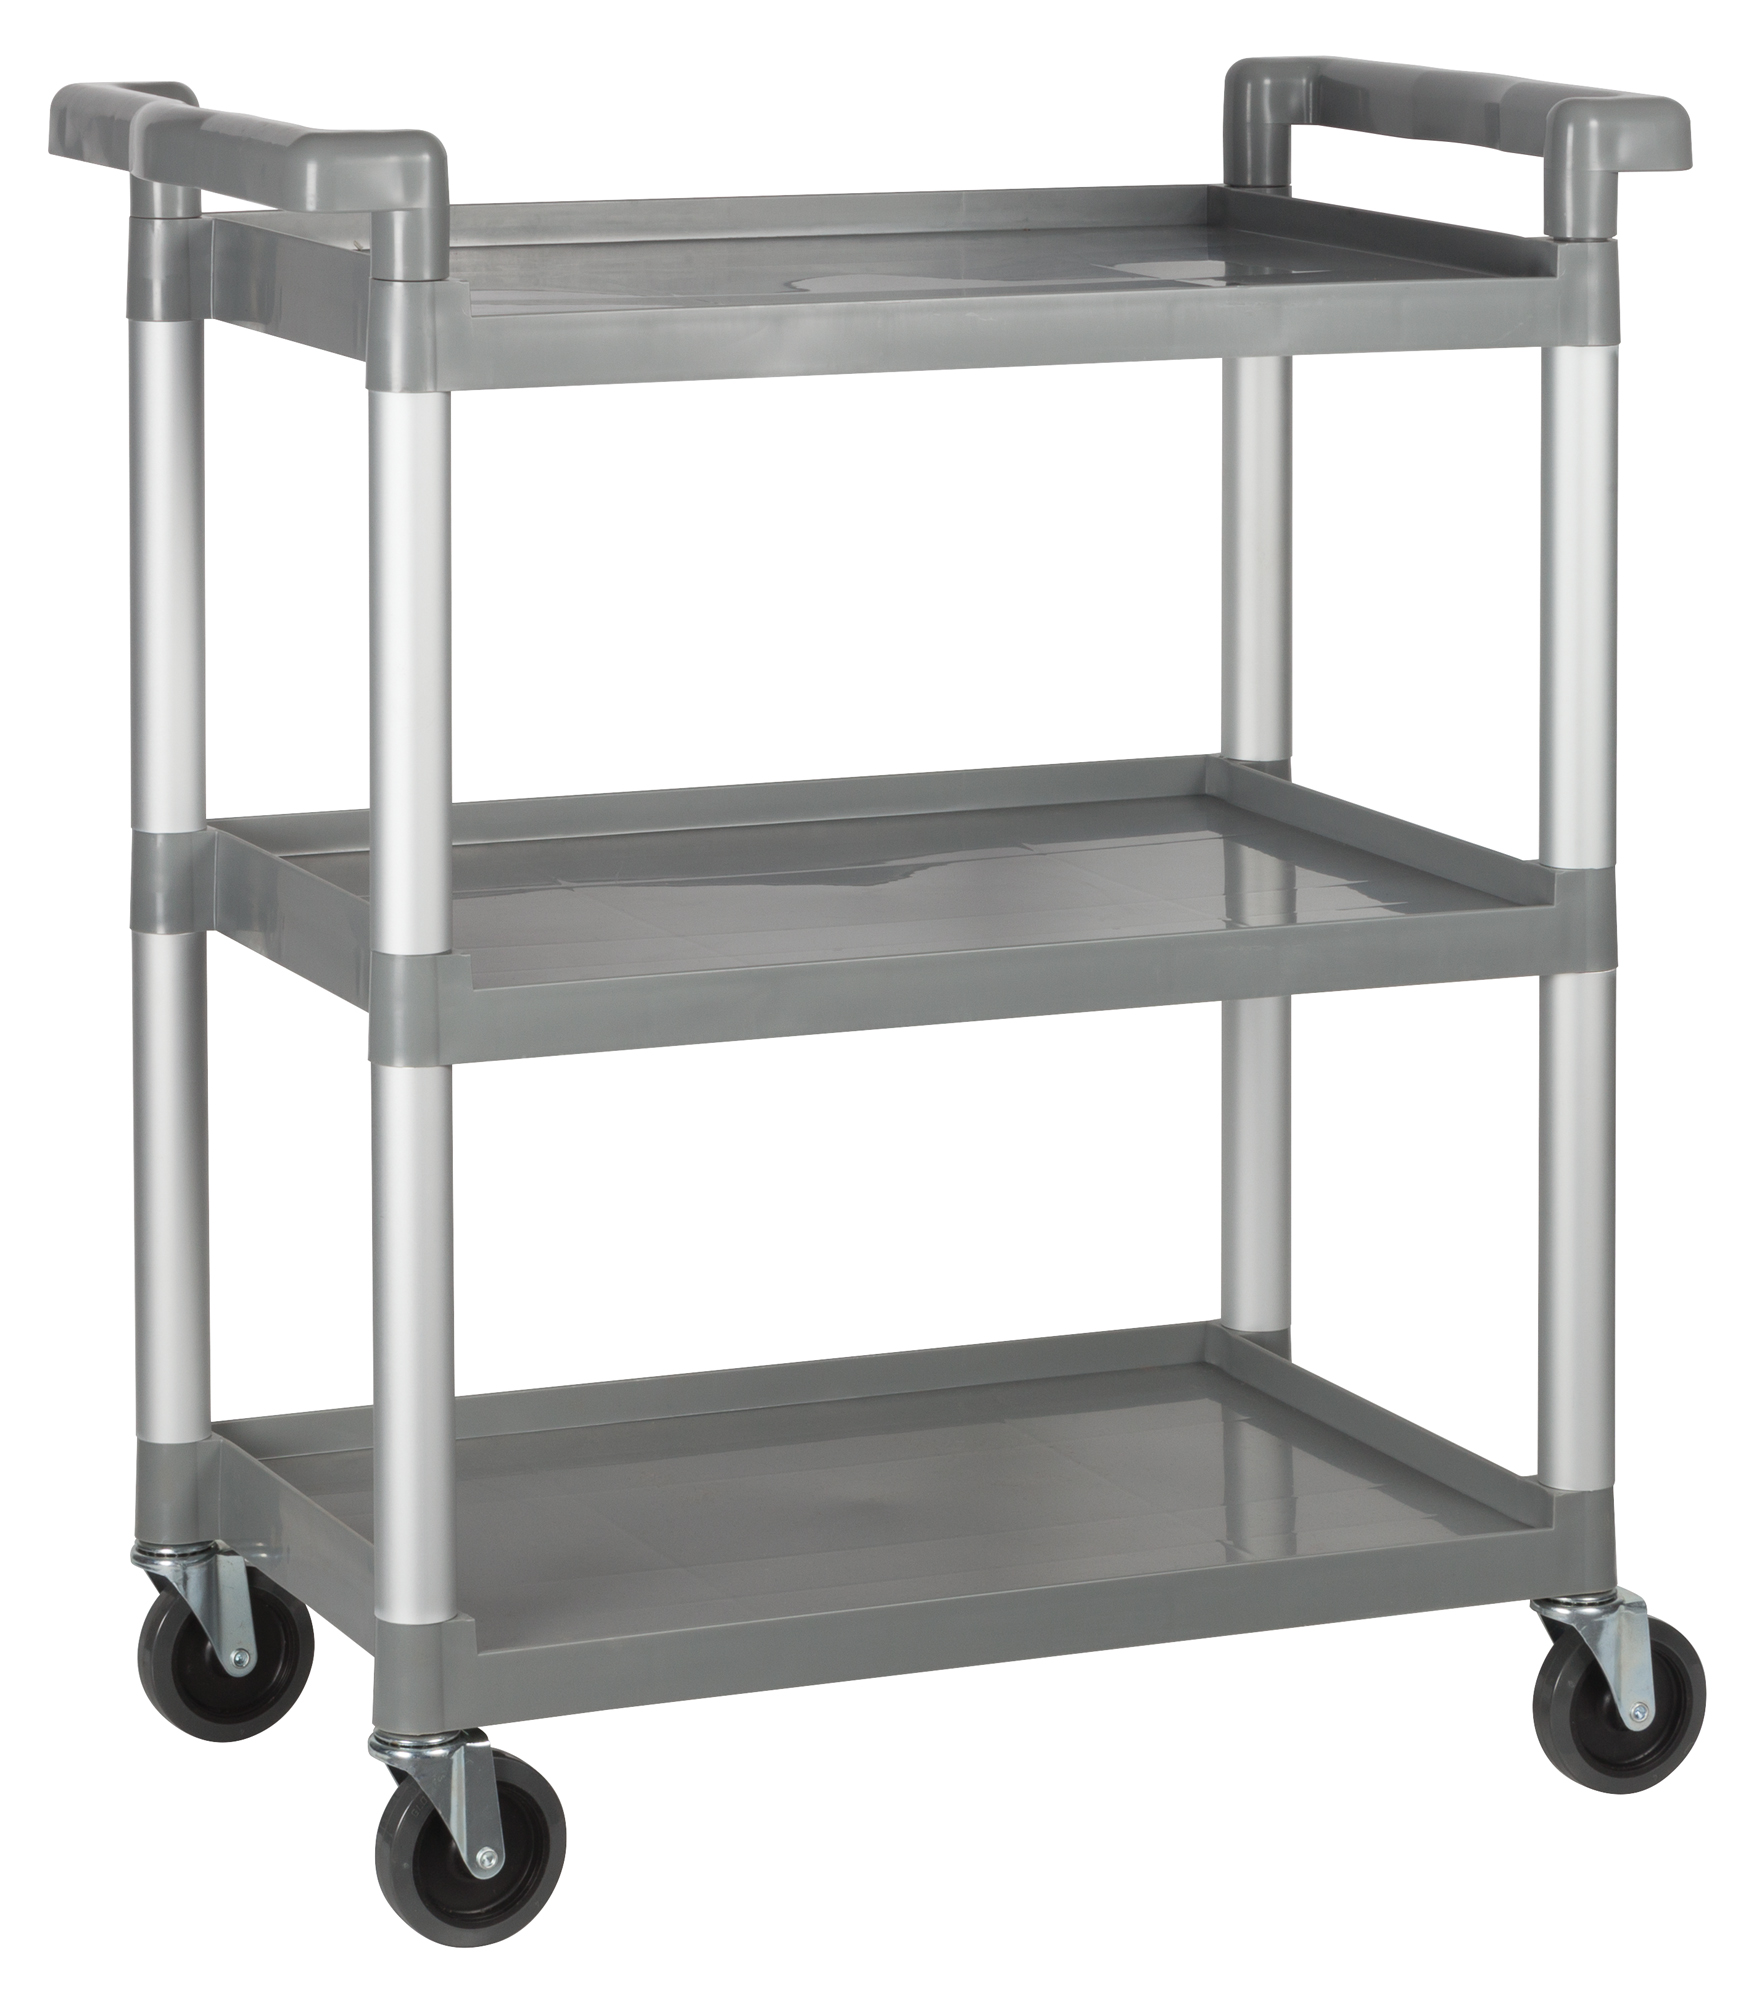 Winco UC-2415G utility & bus carts